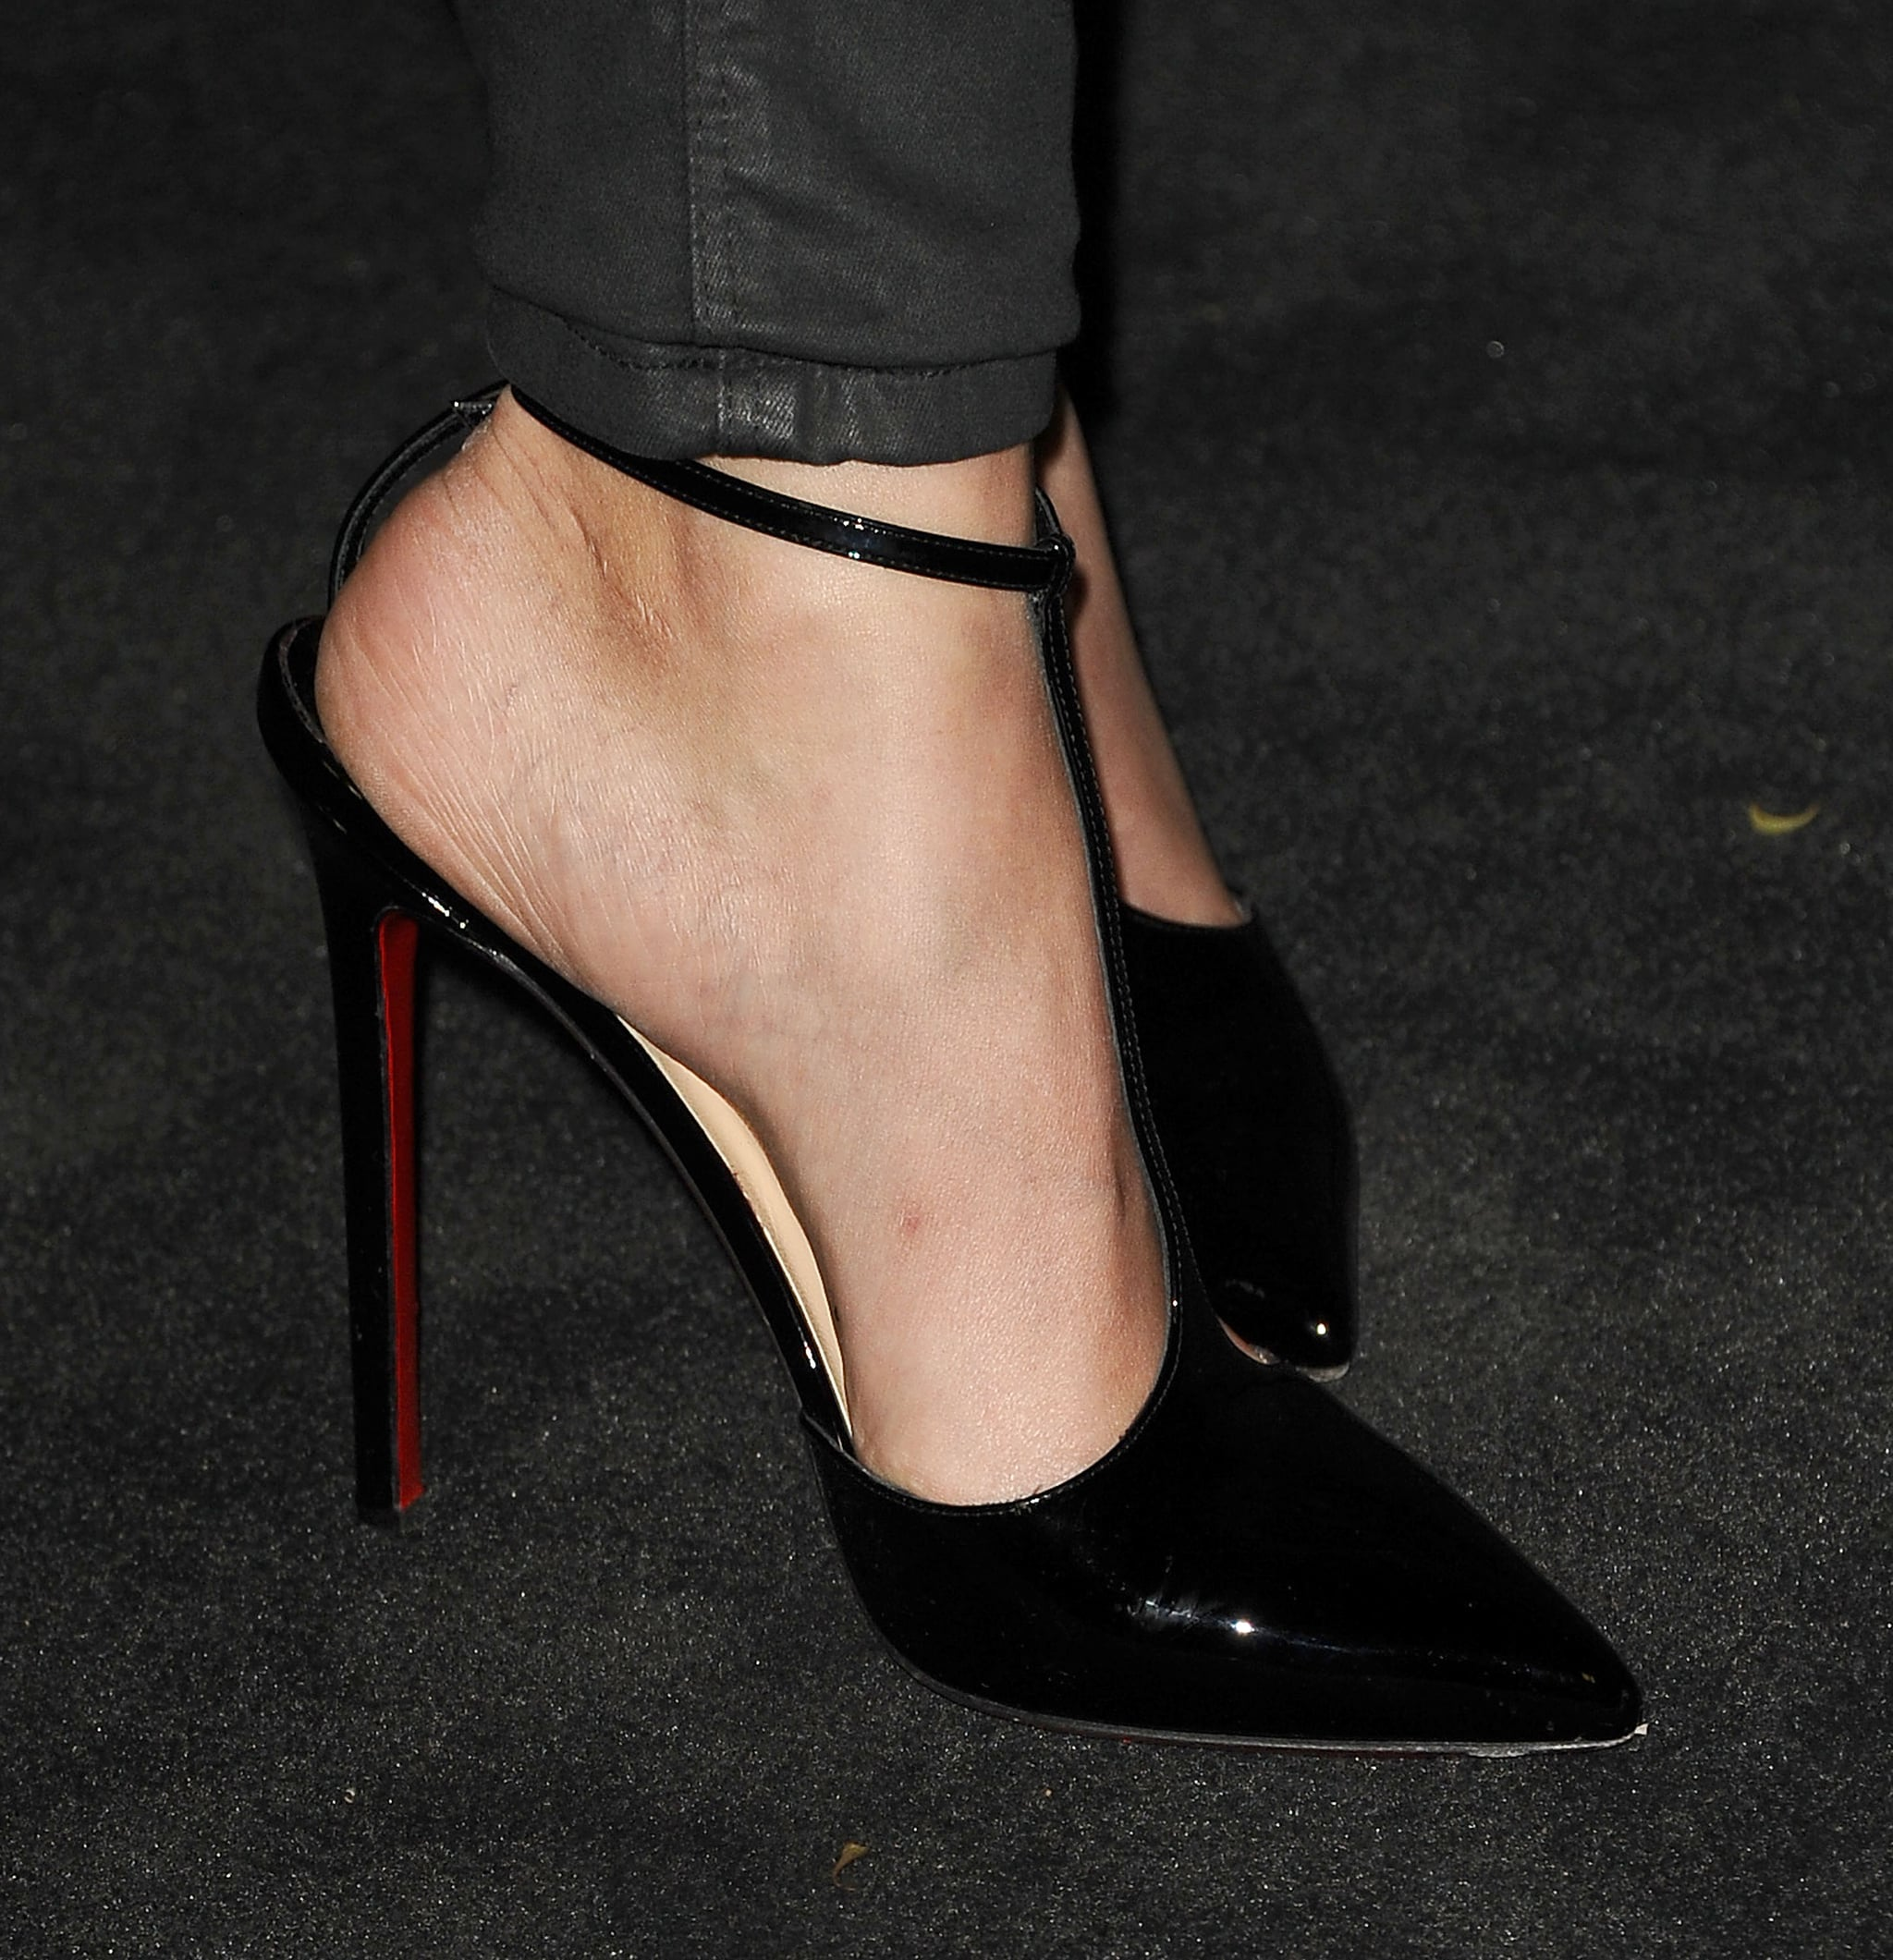 At the Chanel party, Alicia Vikander wore Christian Louboutin T ...